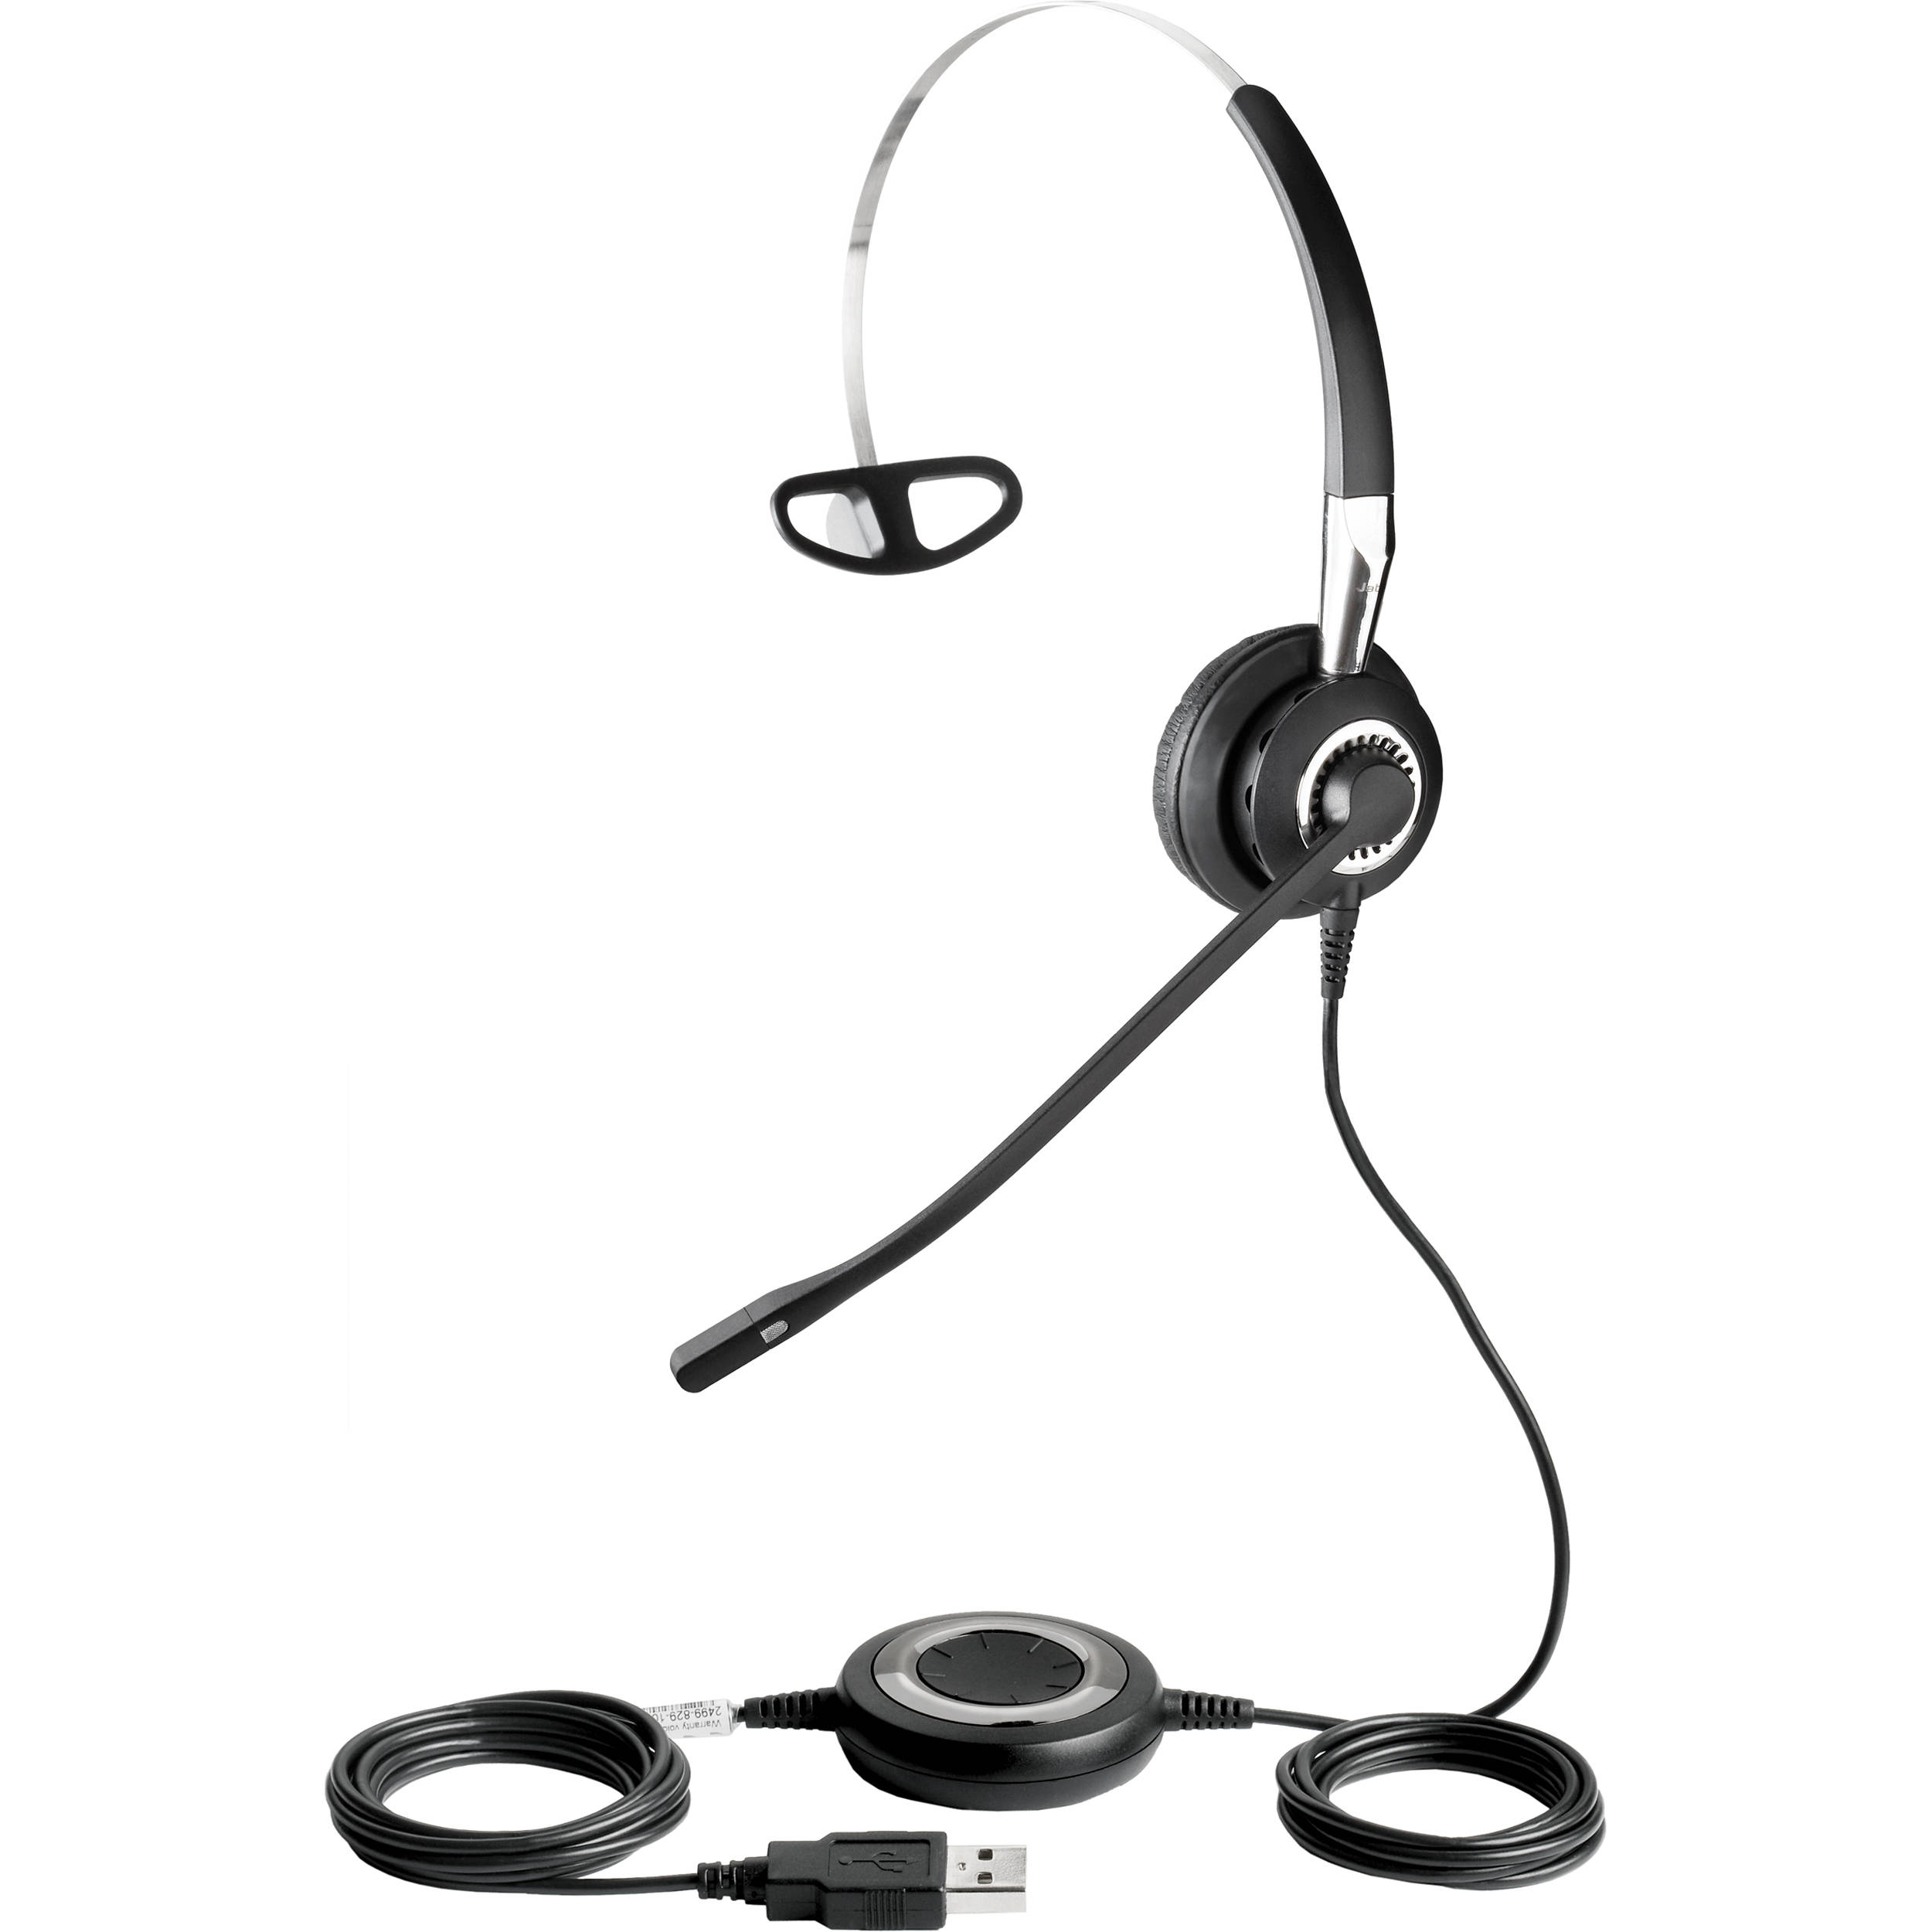 Jabra Biz 2400 USB Mono Headset 2496-829-105 B&H Photo Video